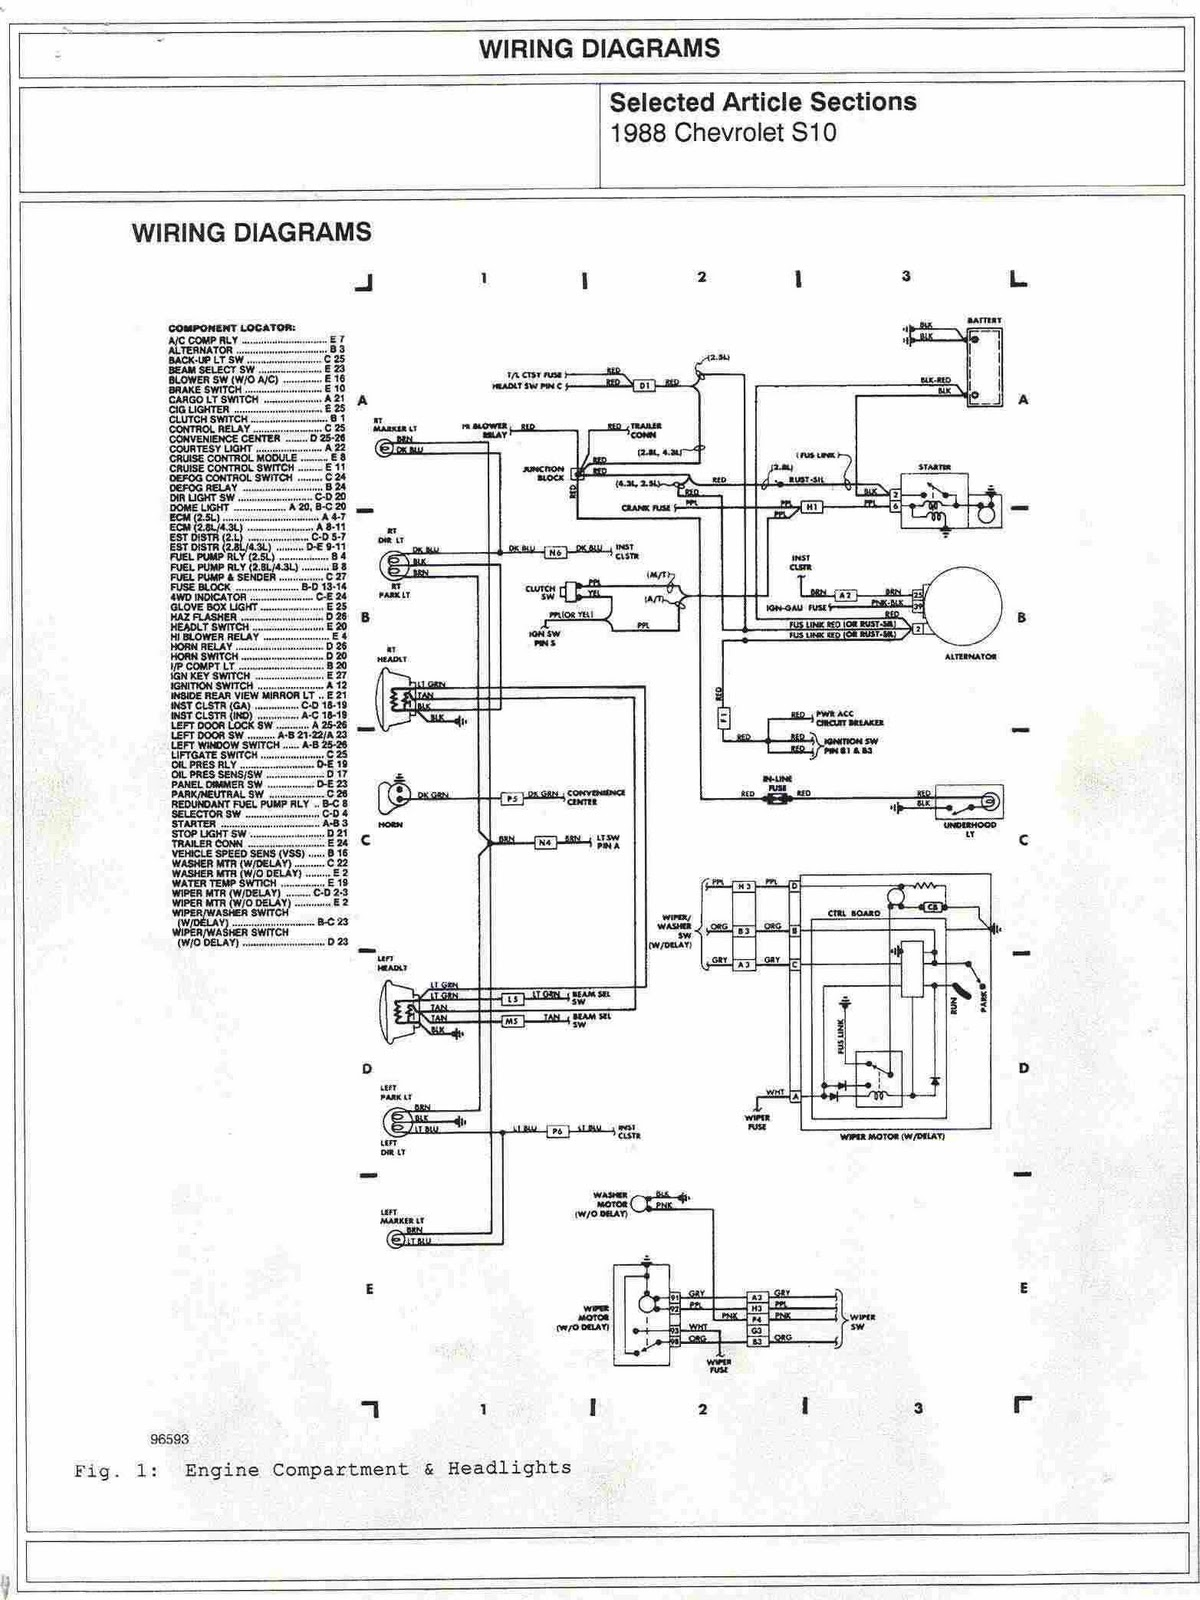 Chevy S10 Headlight Diagram Schematics Wiring Diagrams 2000 Engine 1988 Motorcycle Pictures 1997